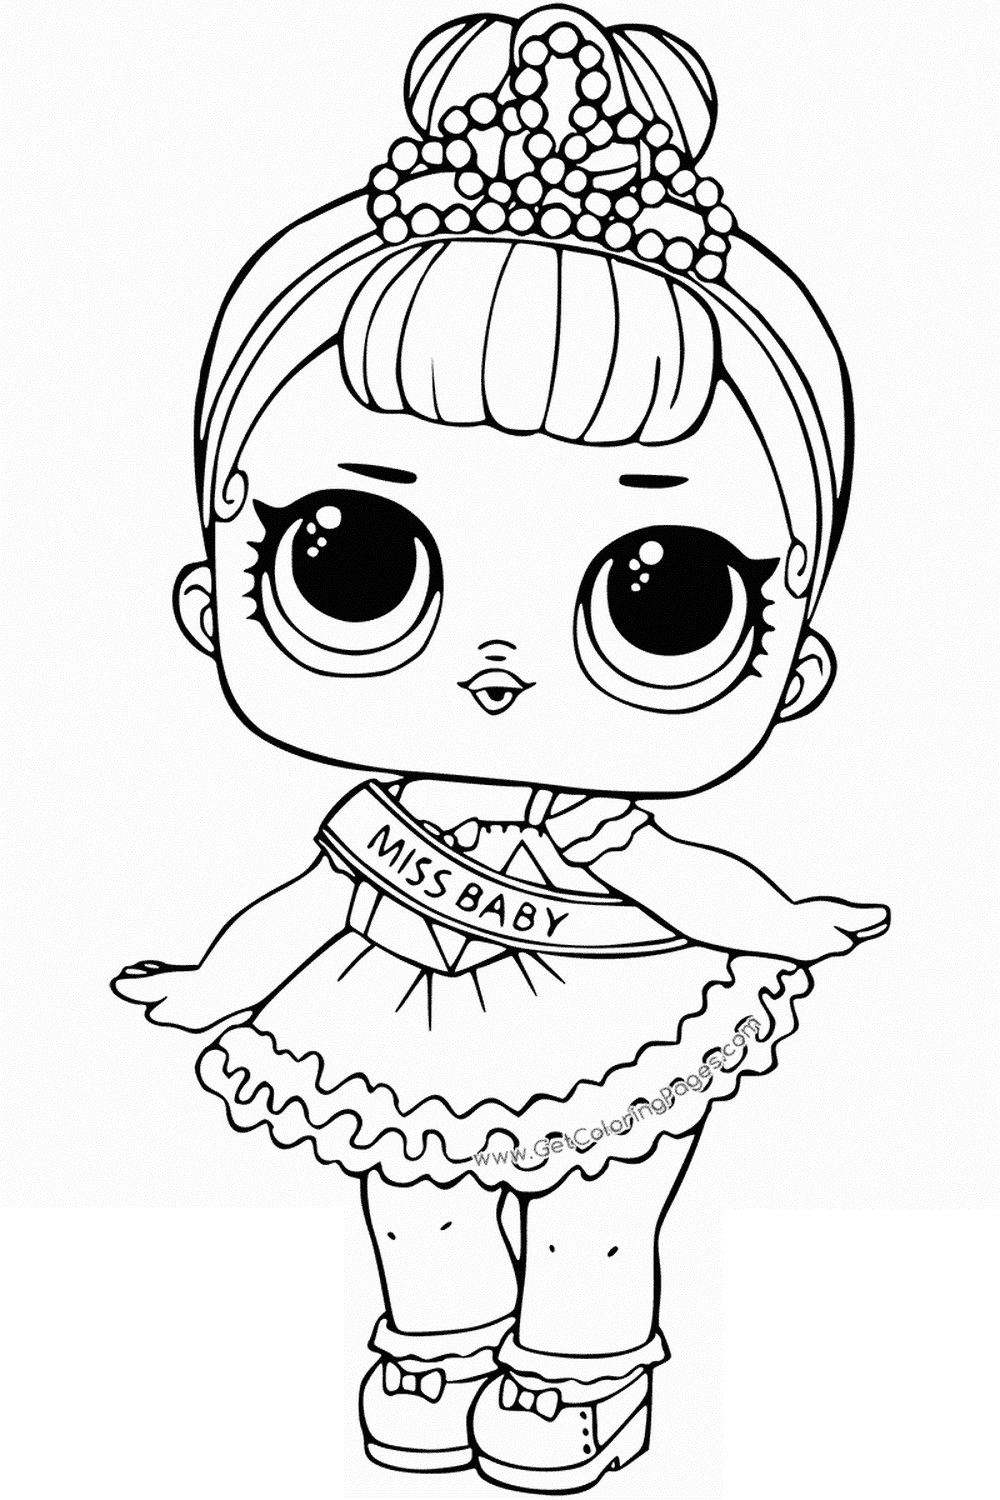 coloring template printable lol colouring pages lol surprise doll coloring pages showbaby free printable coloring printable lol pages colouring template